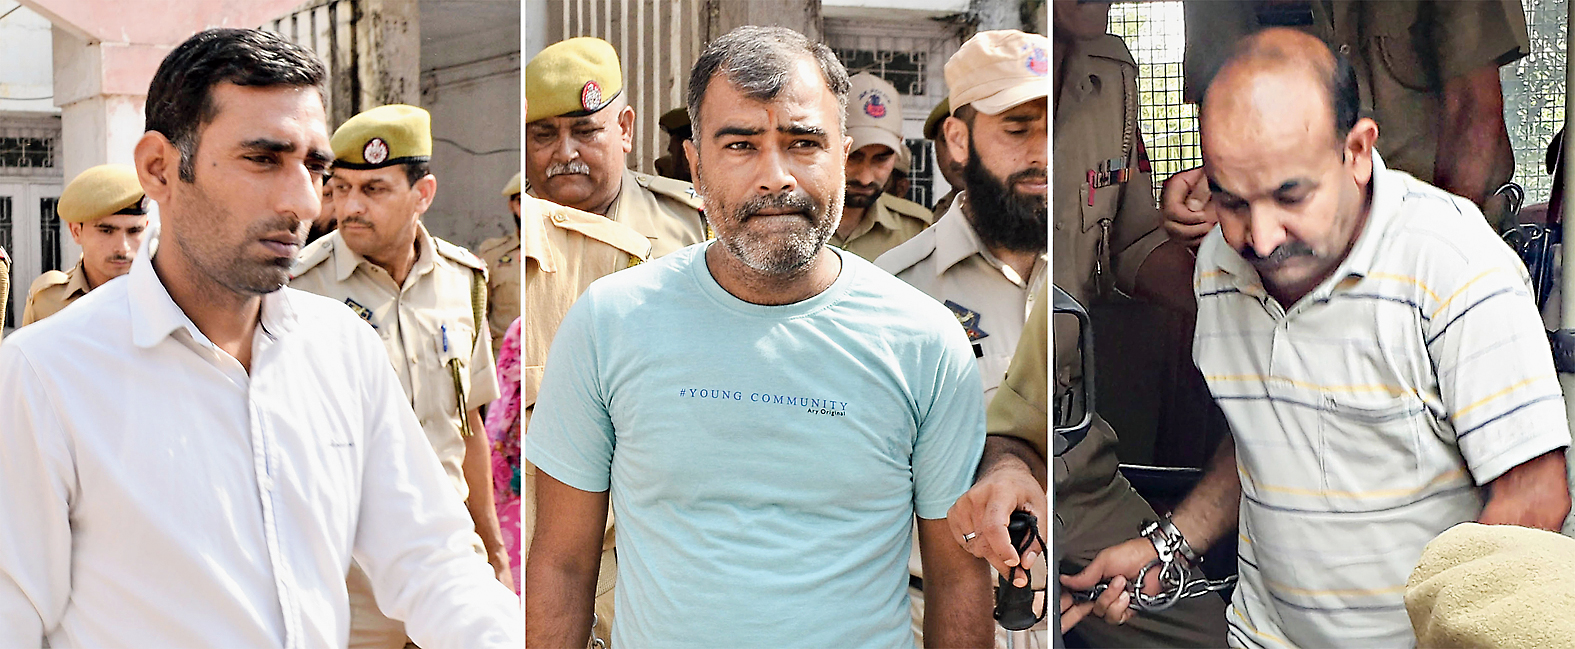 File pictures of the three accomplices, Anand Dutta, Surender Verma and Tilak Raj.